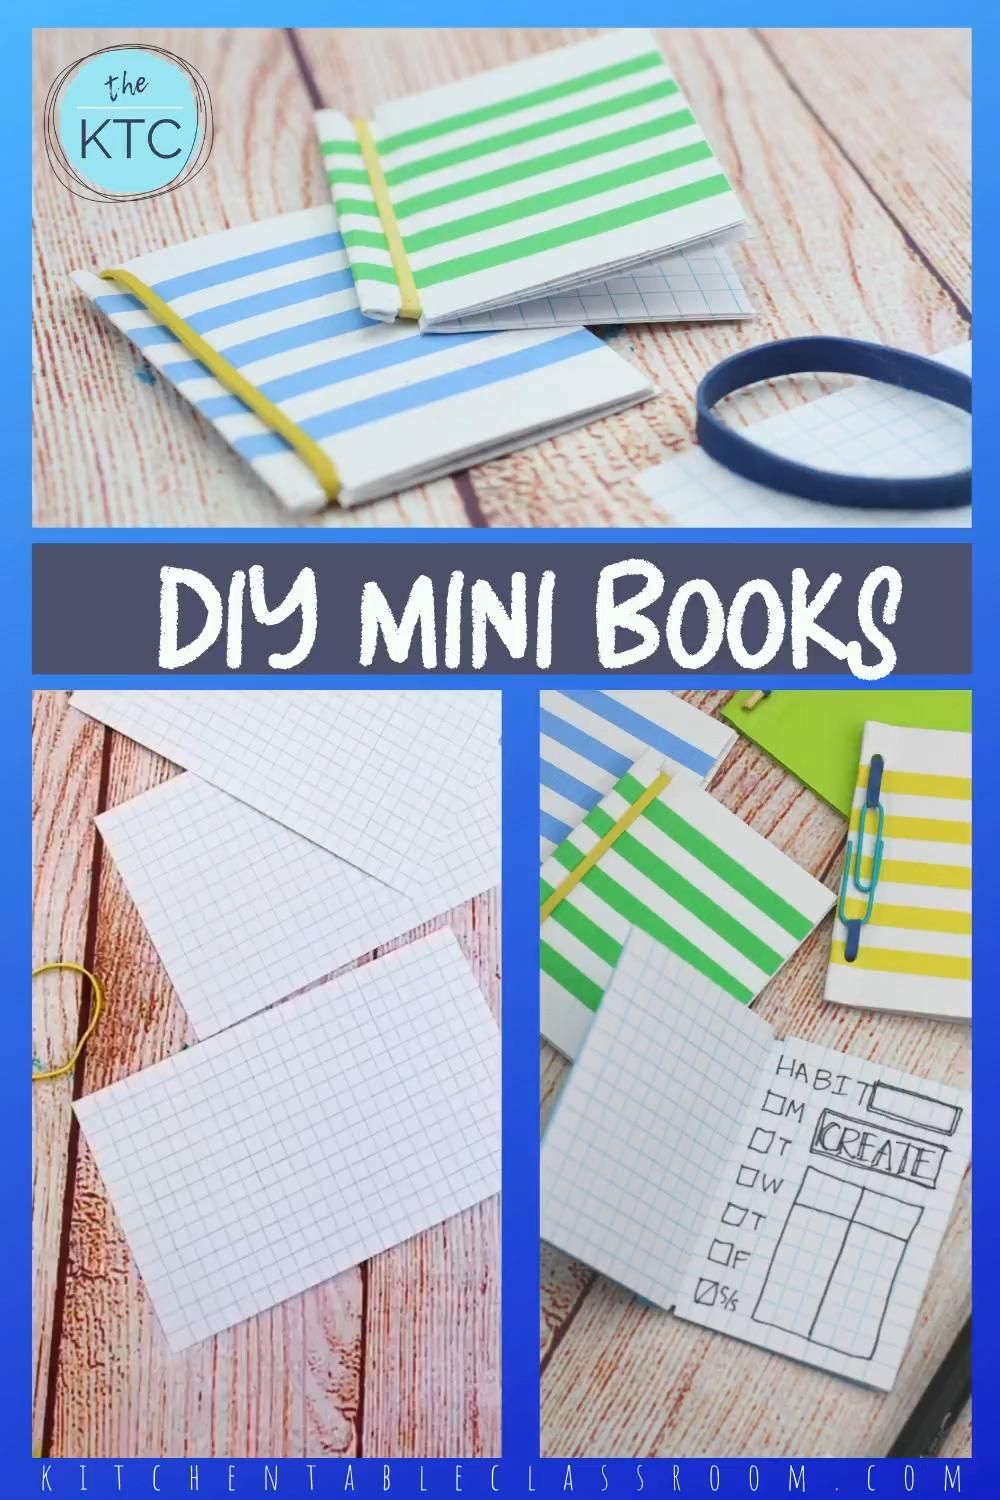 Easy Bookbinding for Kids- How to Make Three Different Rubber Band Books - The Kitchen Table Classroom